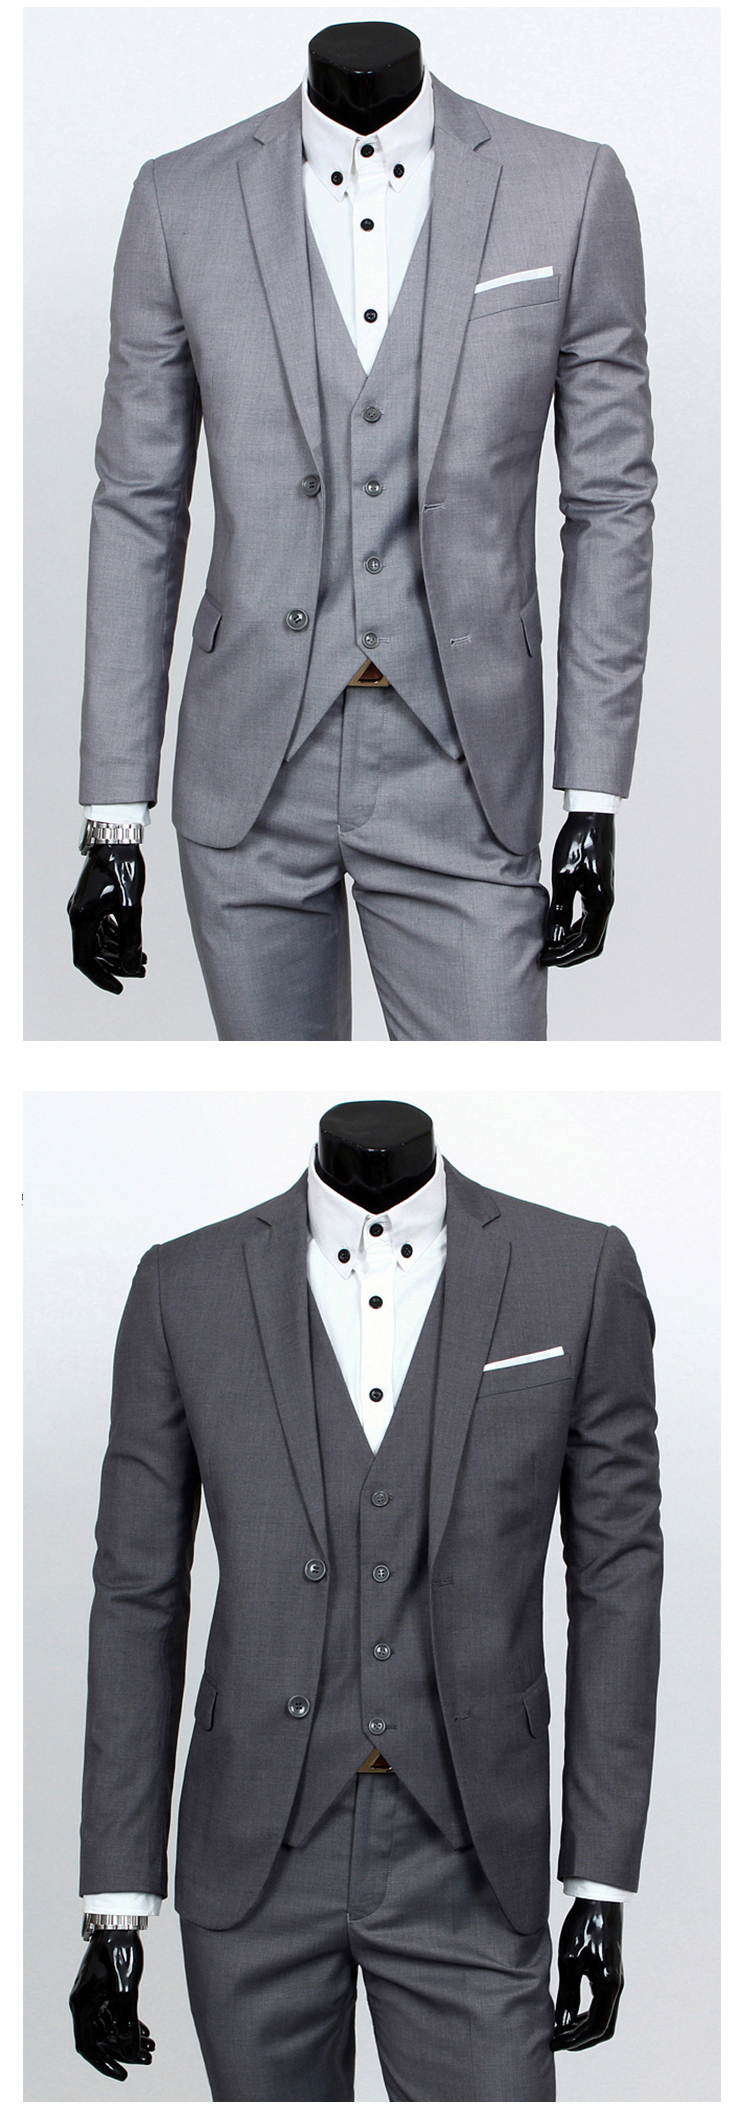 af0a5f1e4 suit + vest + pants 3 pieces sets / Men's one buckle and two button  business suits blazers jacket coat + trousers +waistcoat